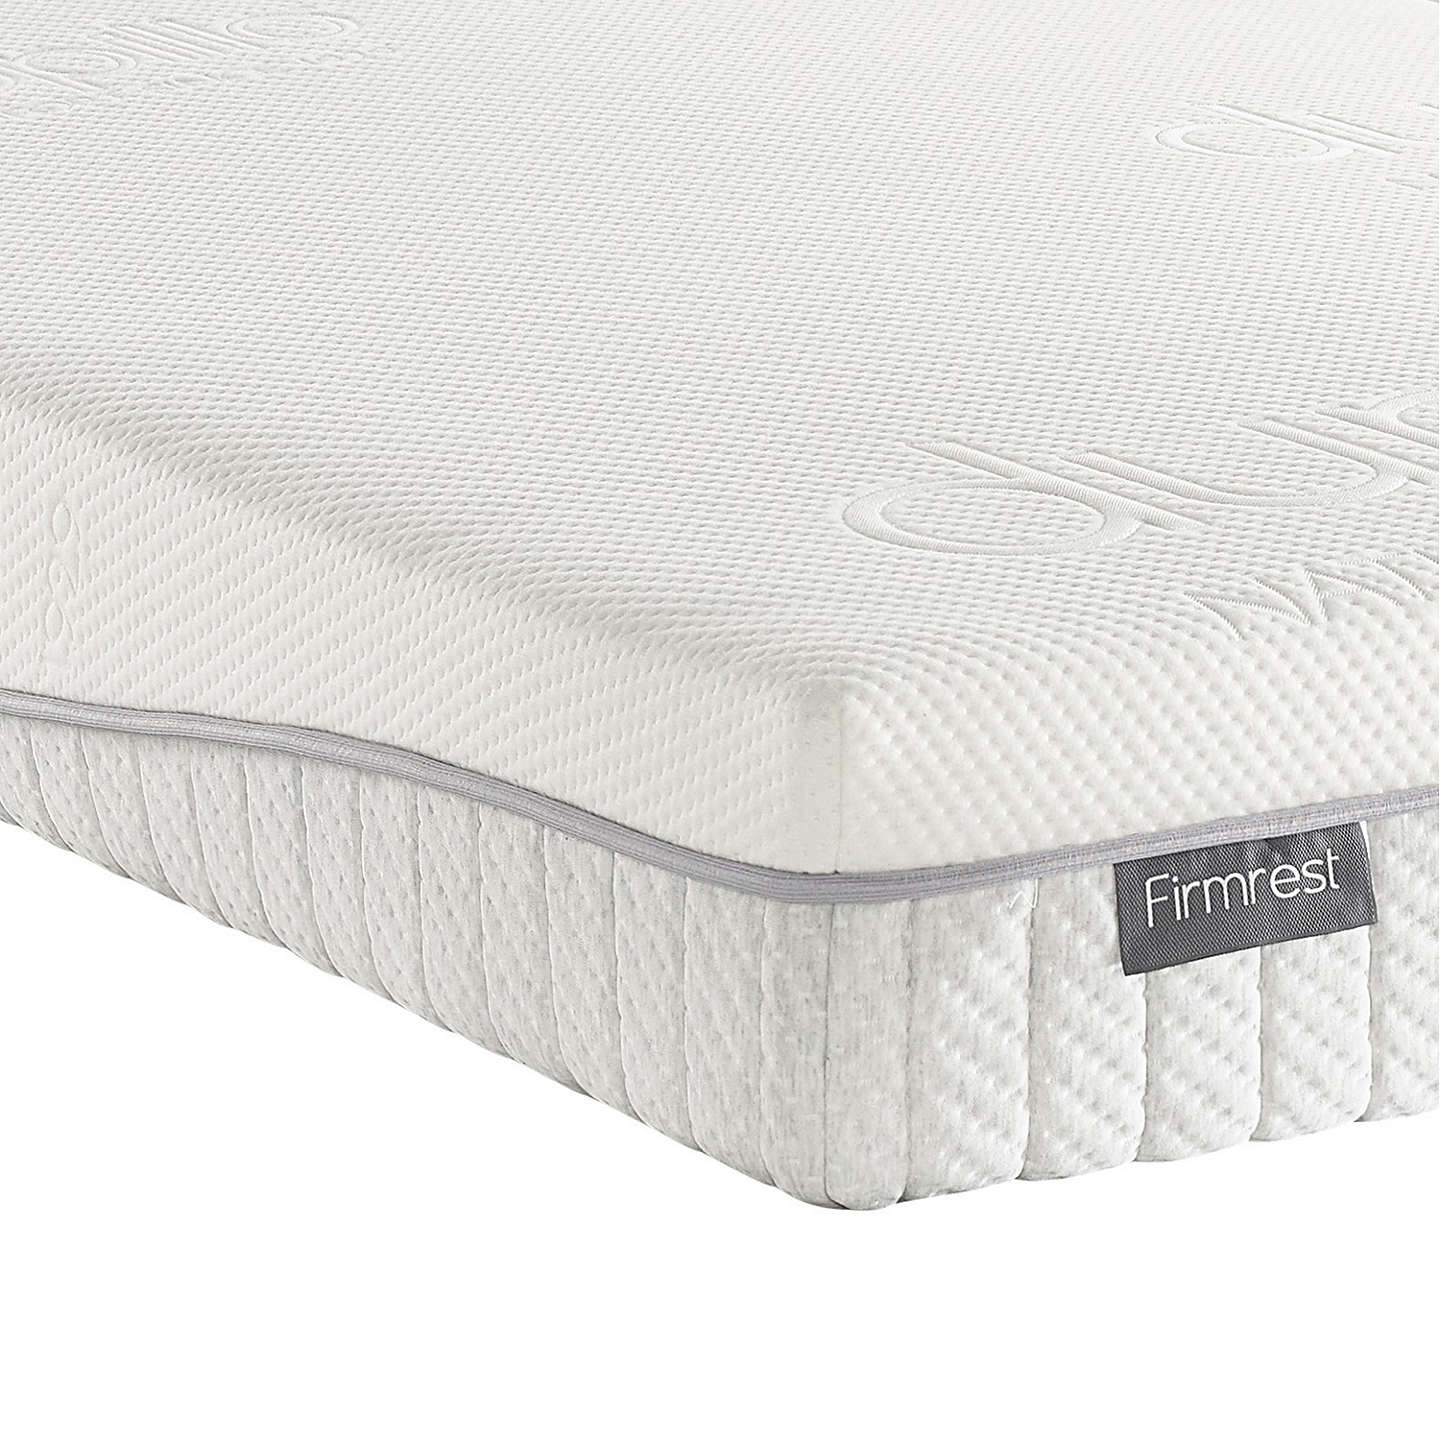 knowlton mattressnextday assured rest latex mattress bed pocket from